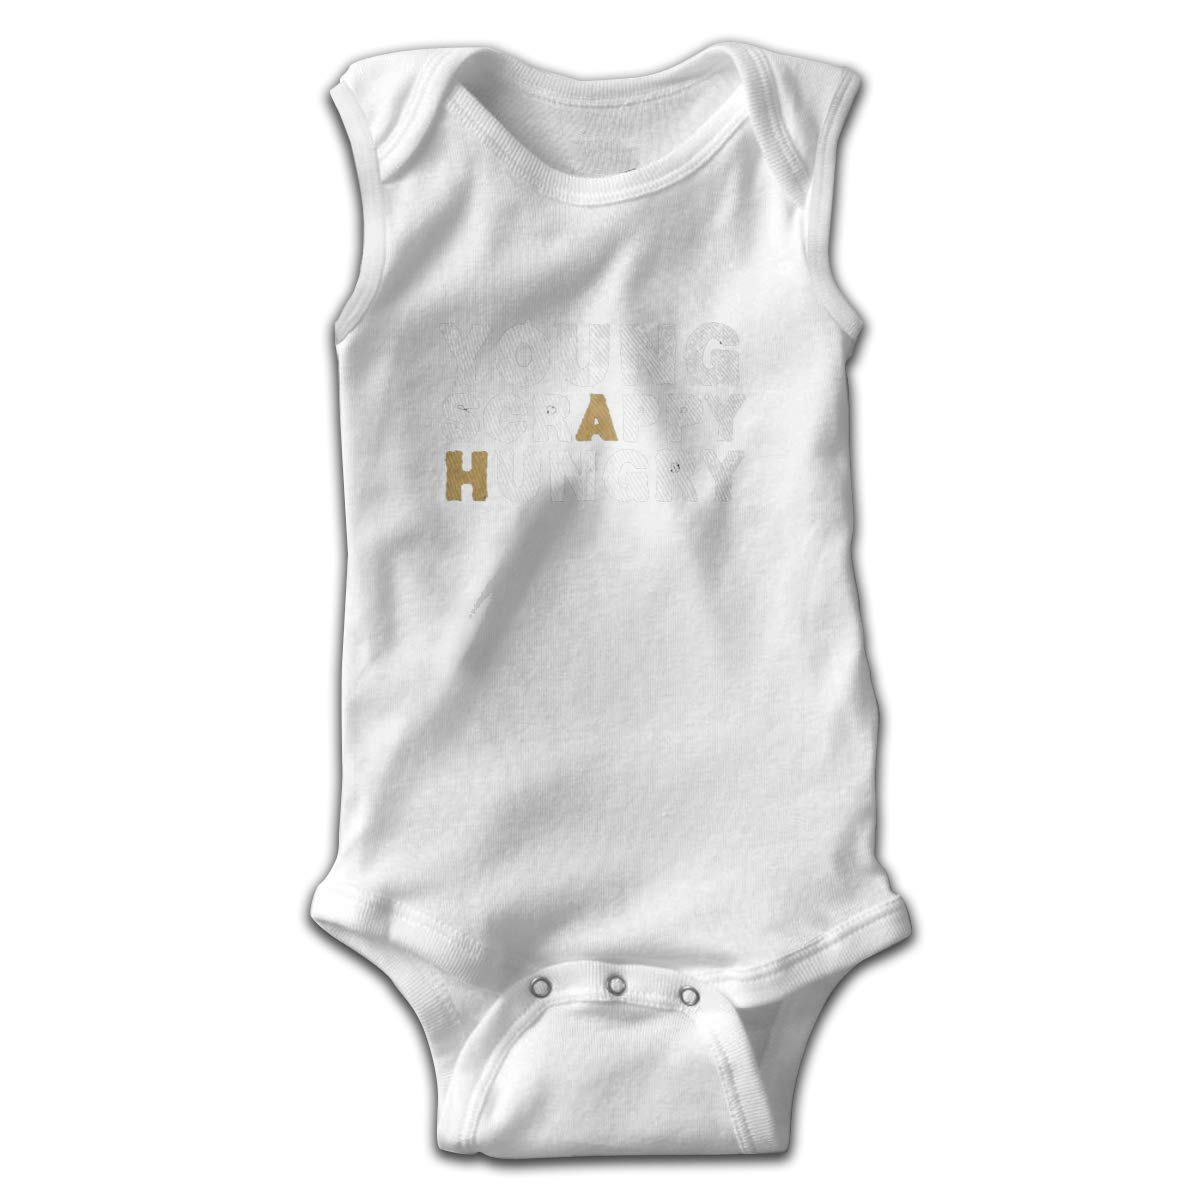 Young Scrappy Hungry Smalls Baby Onesie,Infant Bodysuit Black